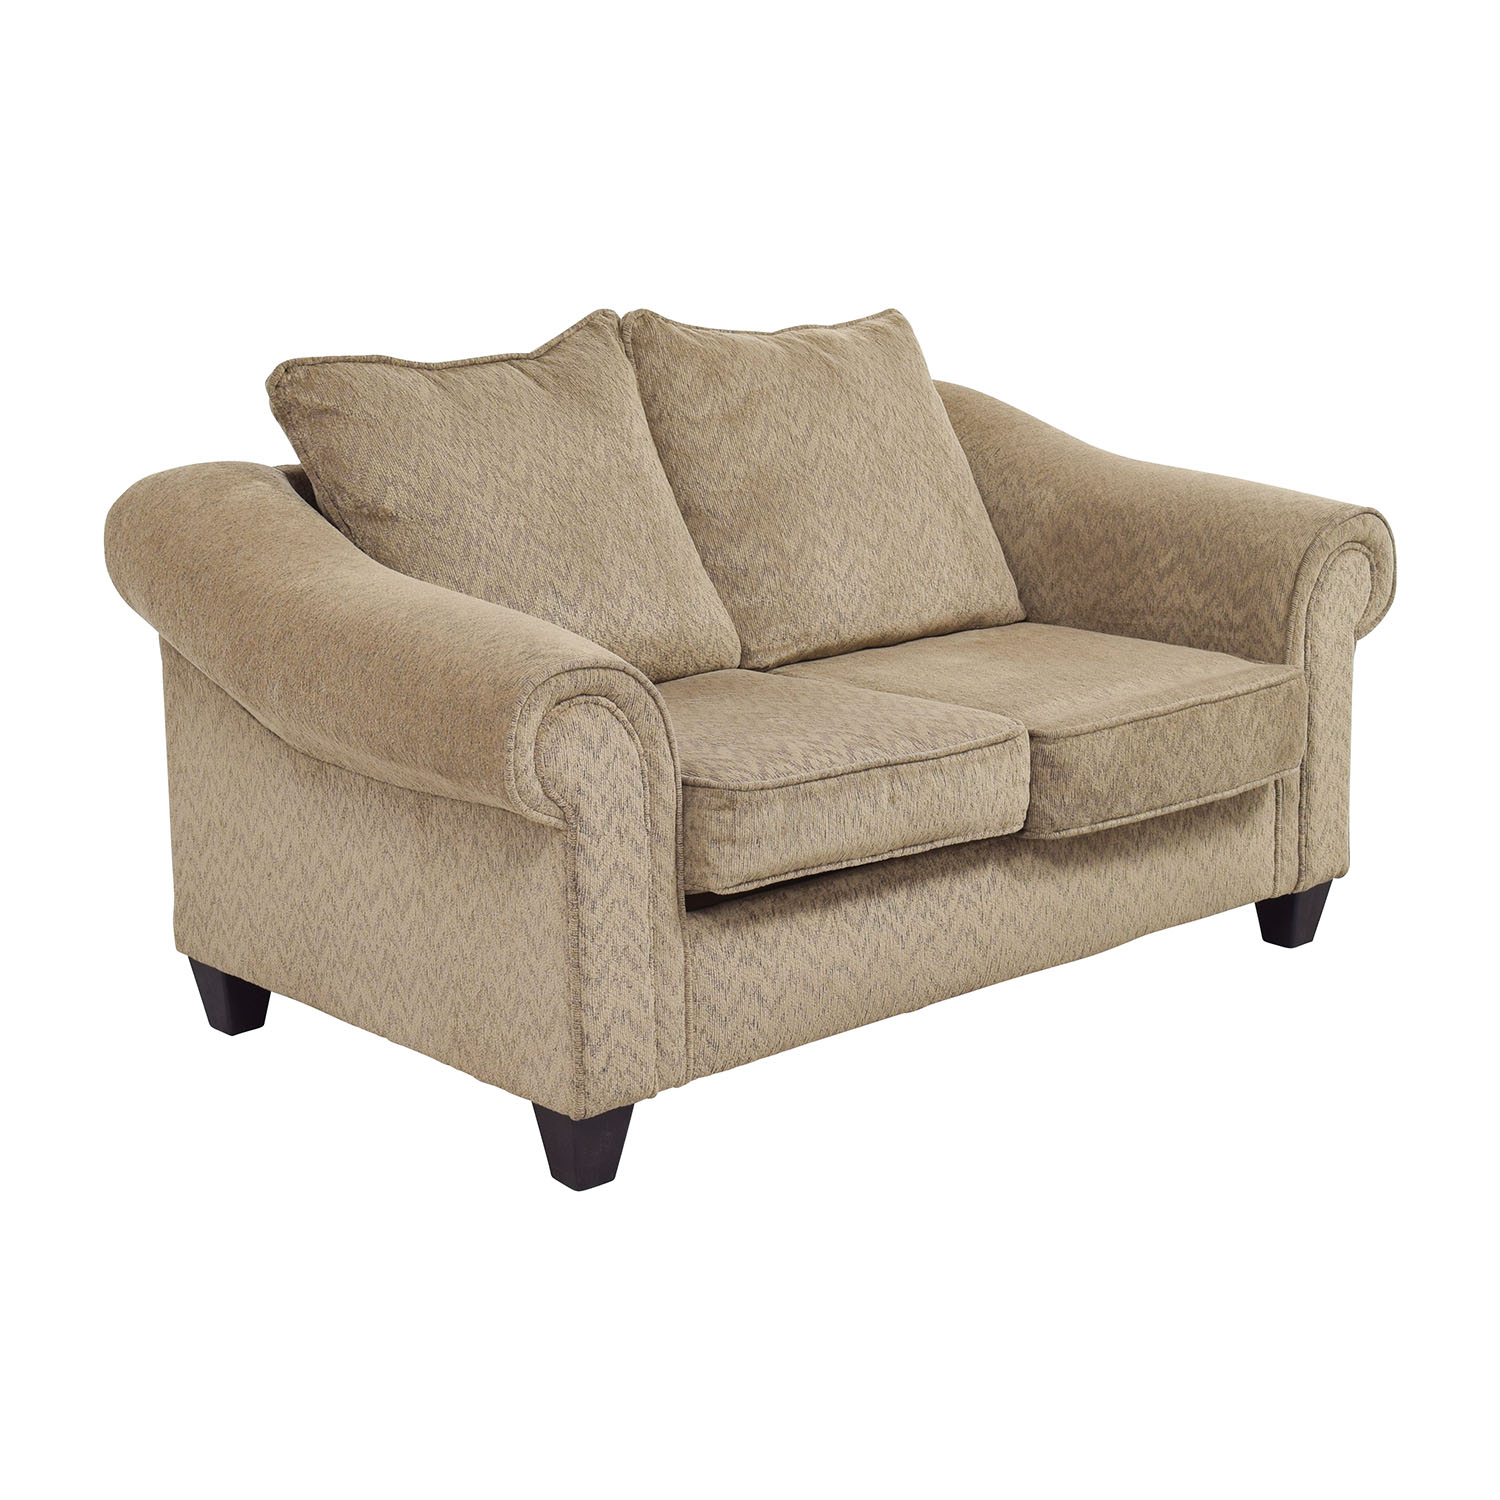 bobs furniture sleeper sofa with right cuddler sofas beautiful ideas